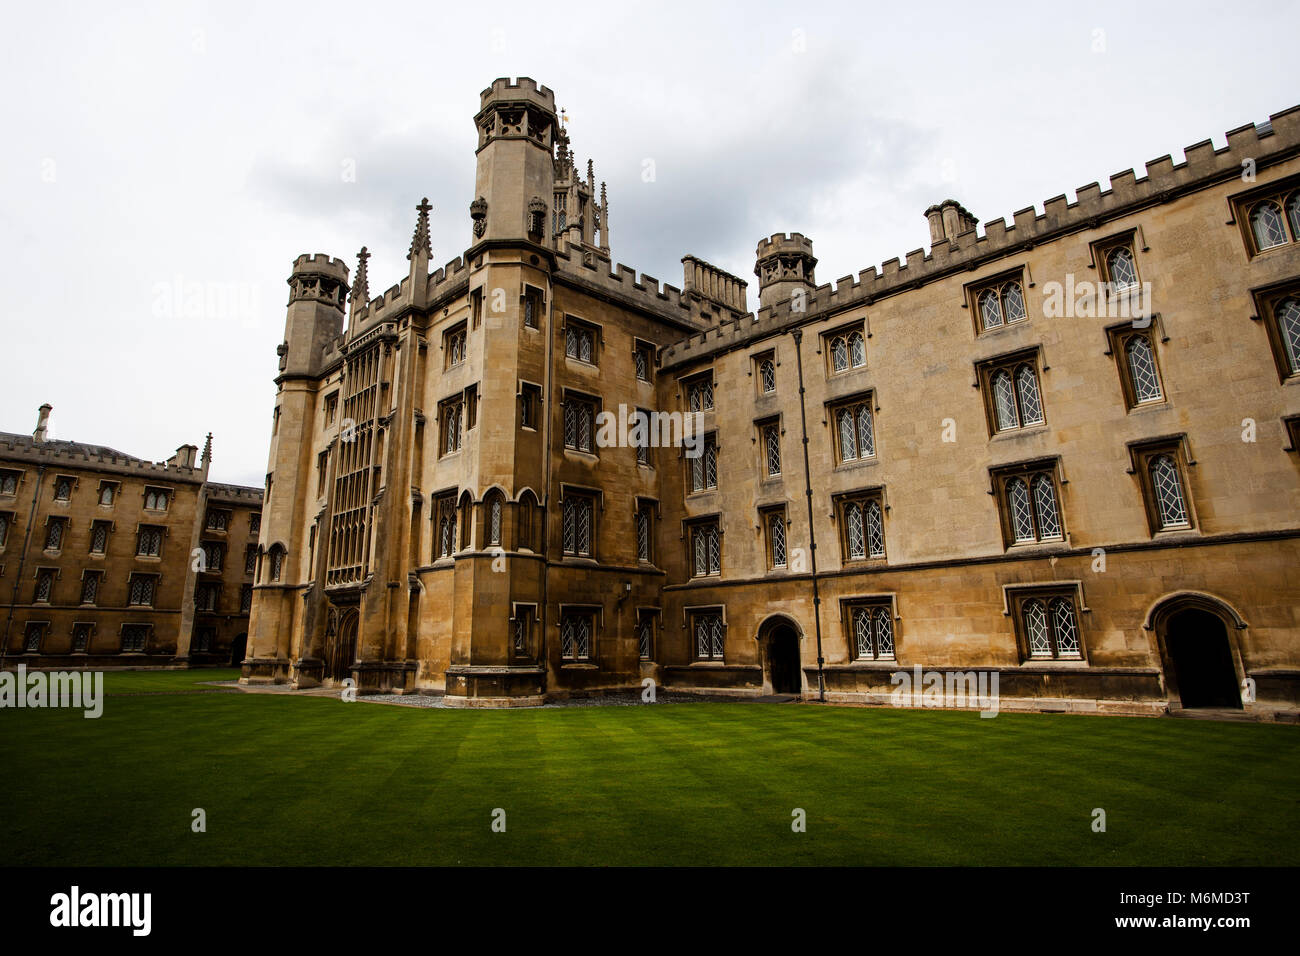 Trinity College buildings and grass in Cambridge University - Stock Image